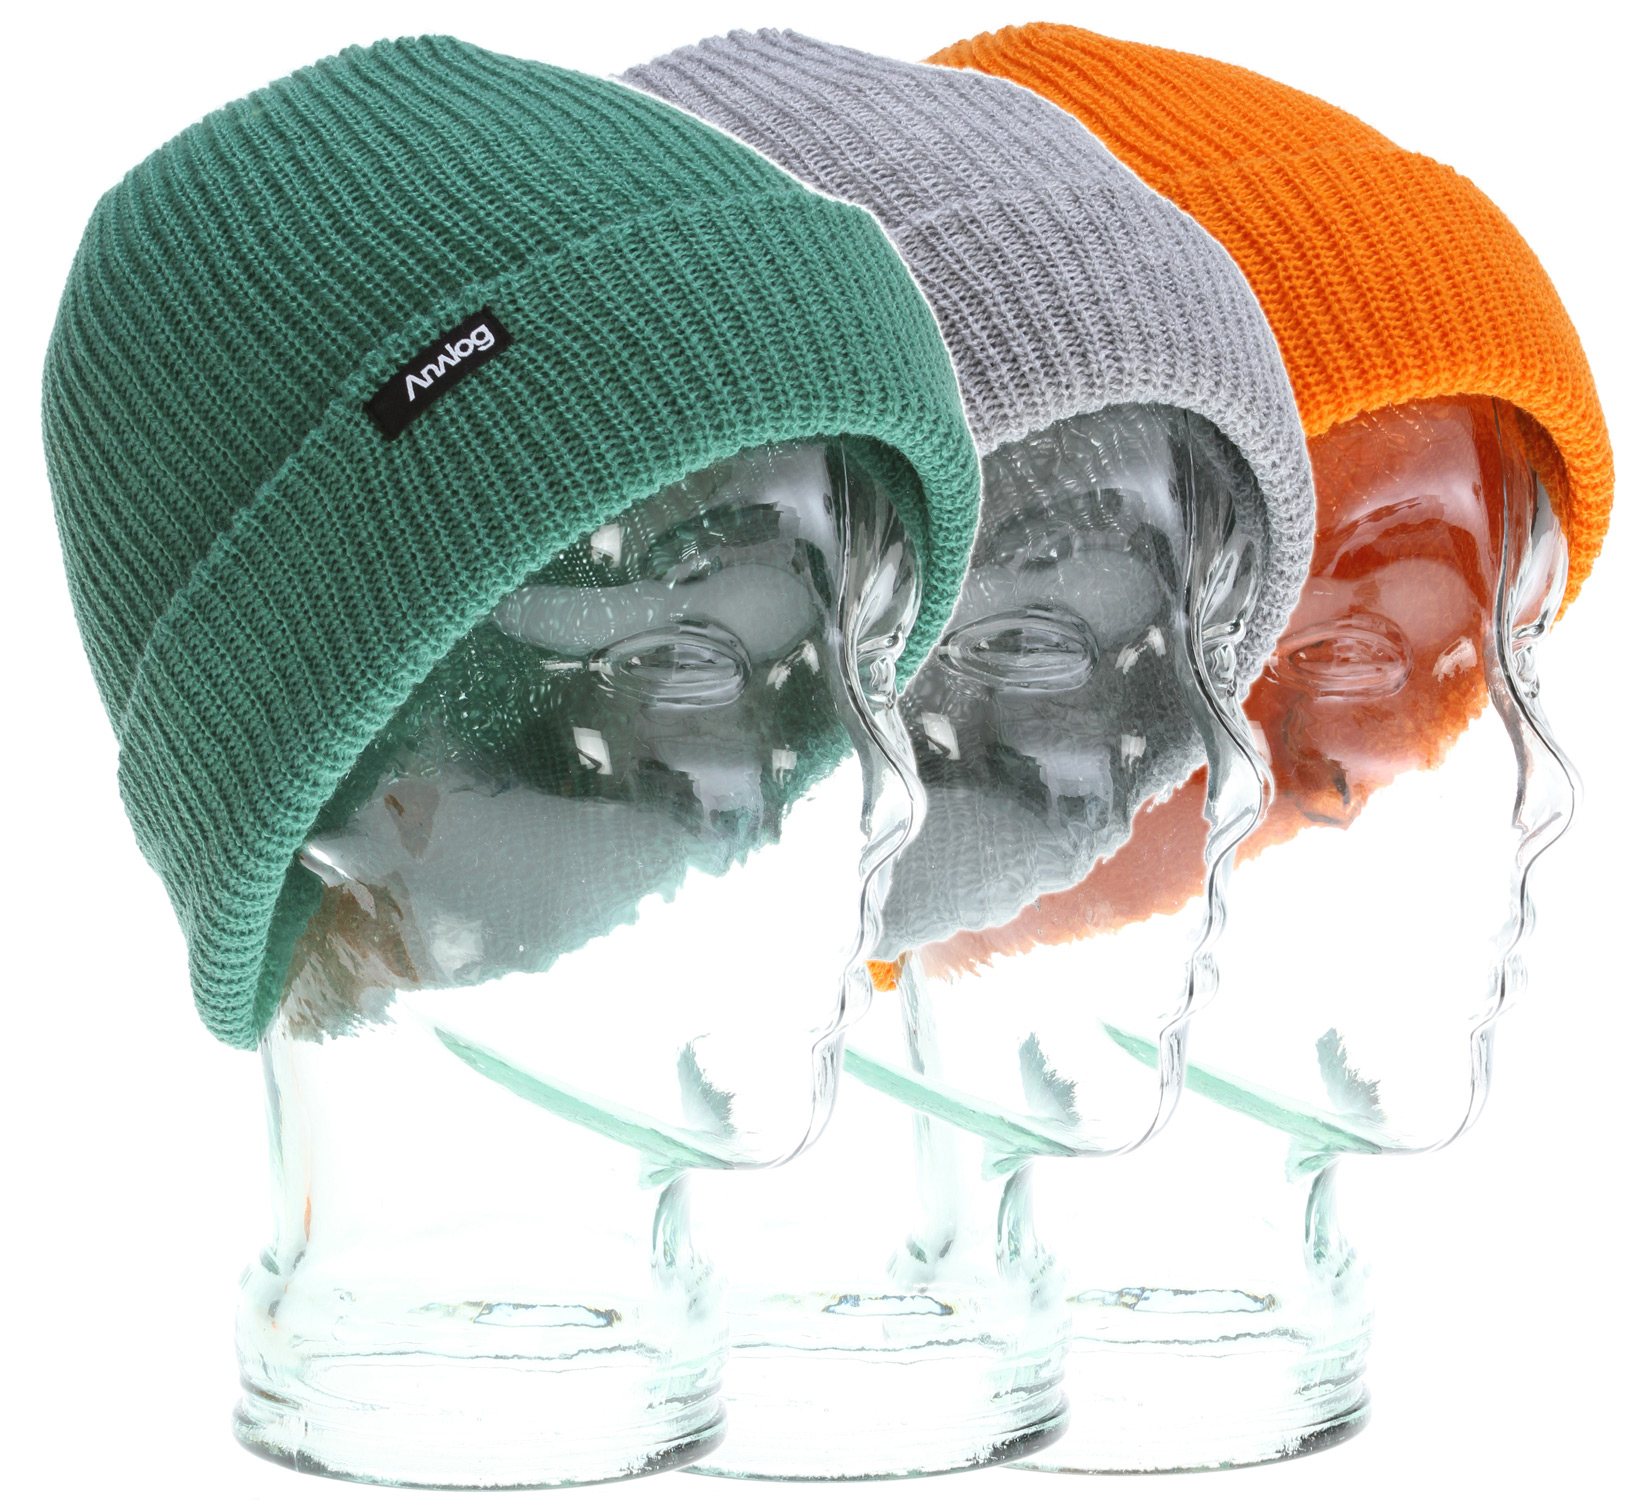 Key Features of the Analog 3 Pack Beanies: Acrylic . Multi-Color 3 Pack. Burglar Fit - $24.00